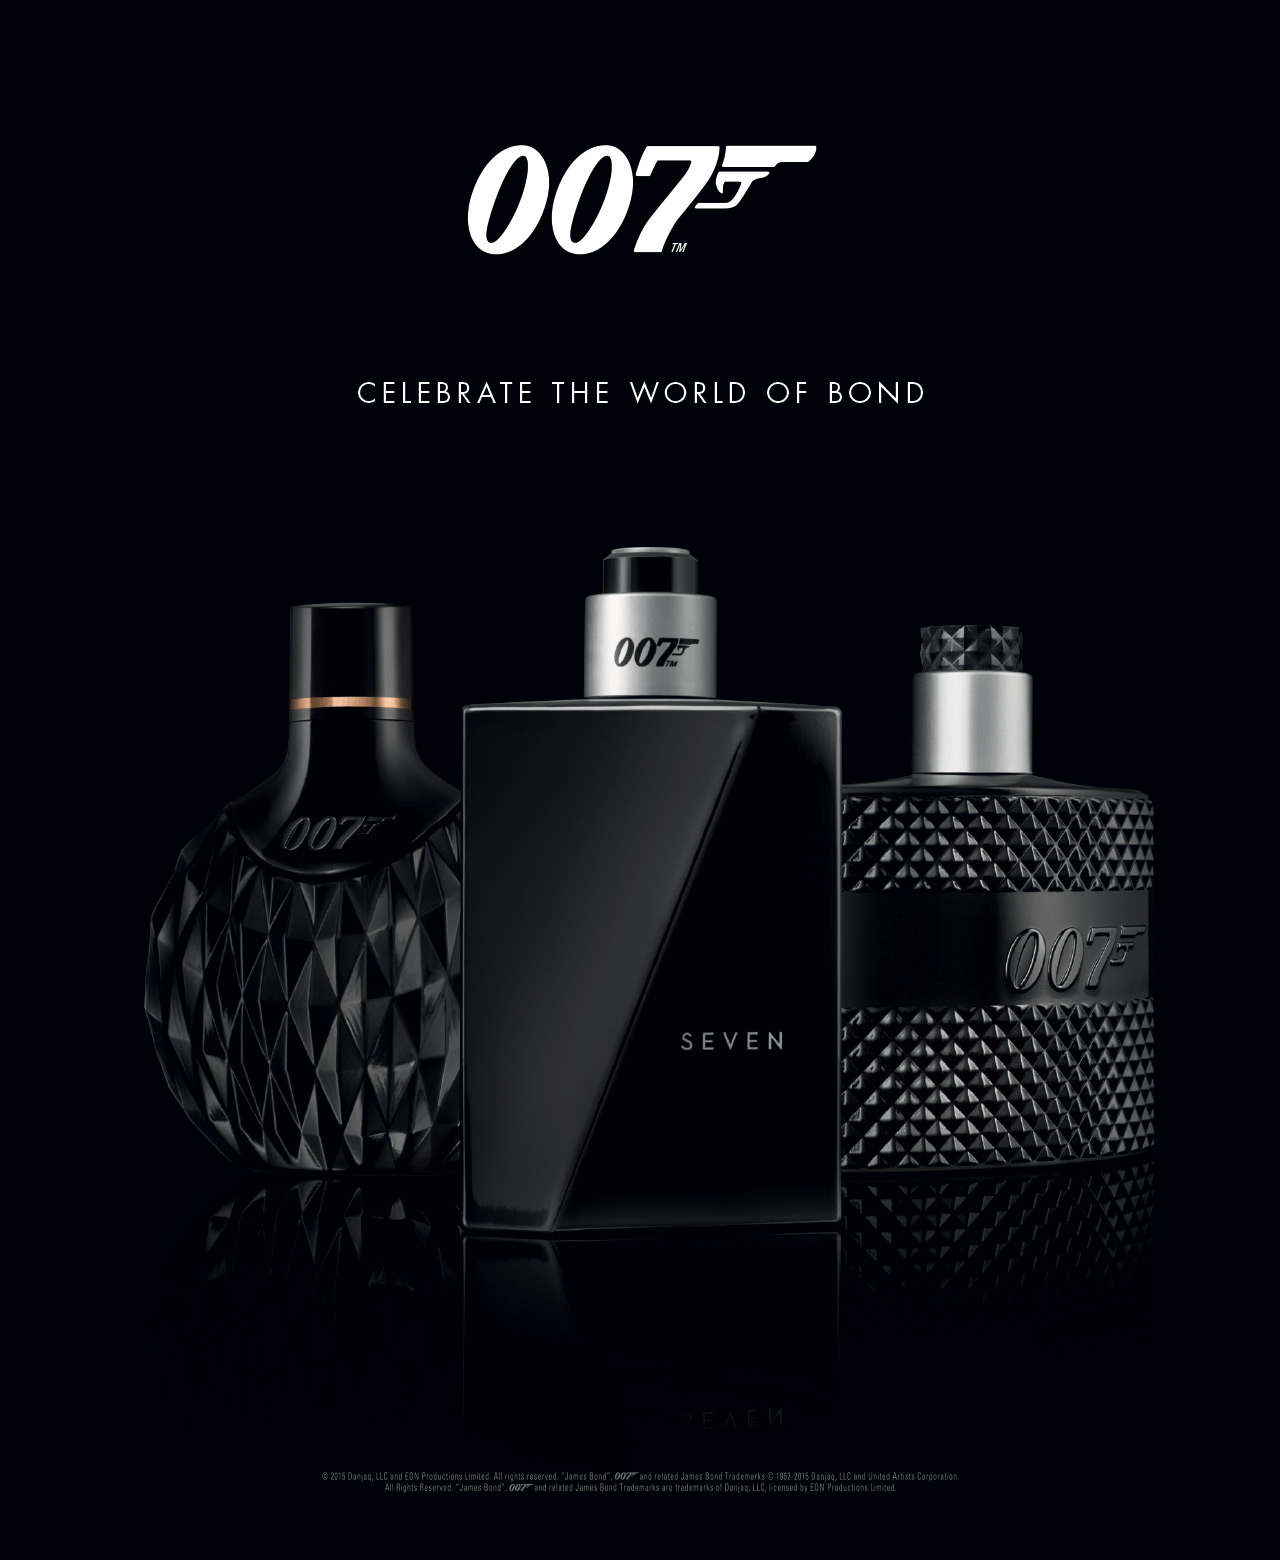 007 Celebrate The World Of Bond